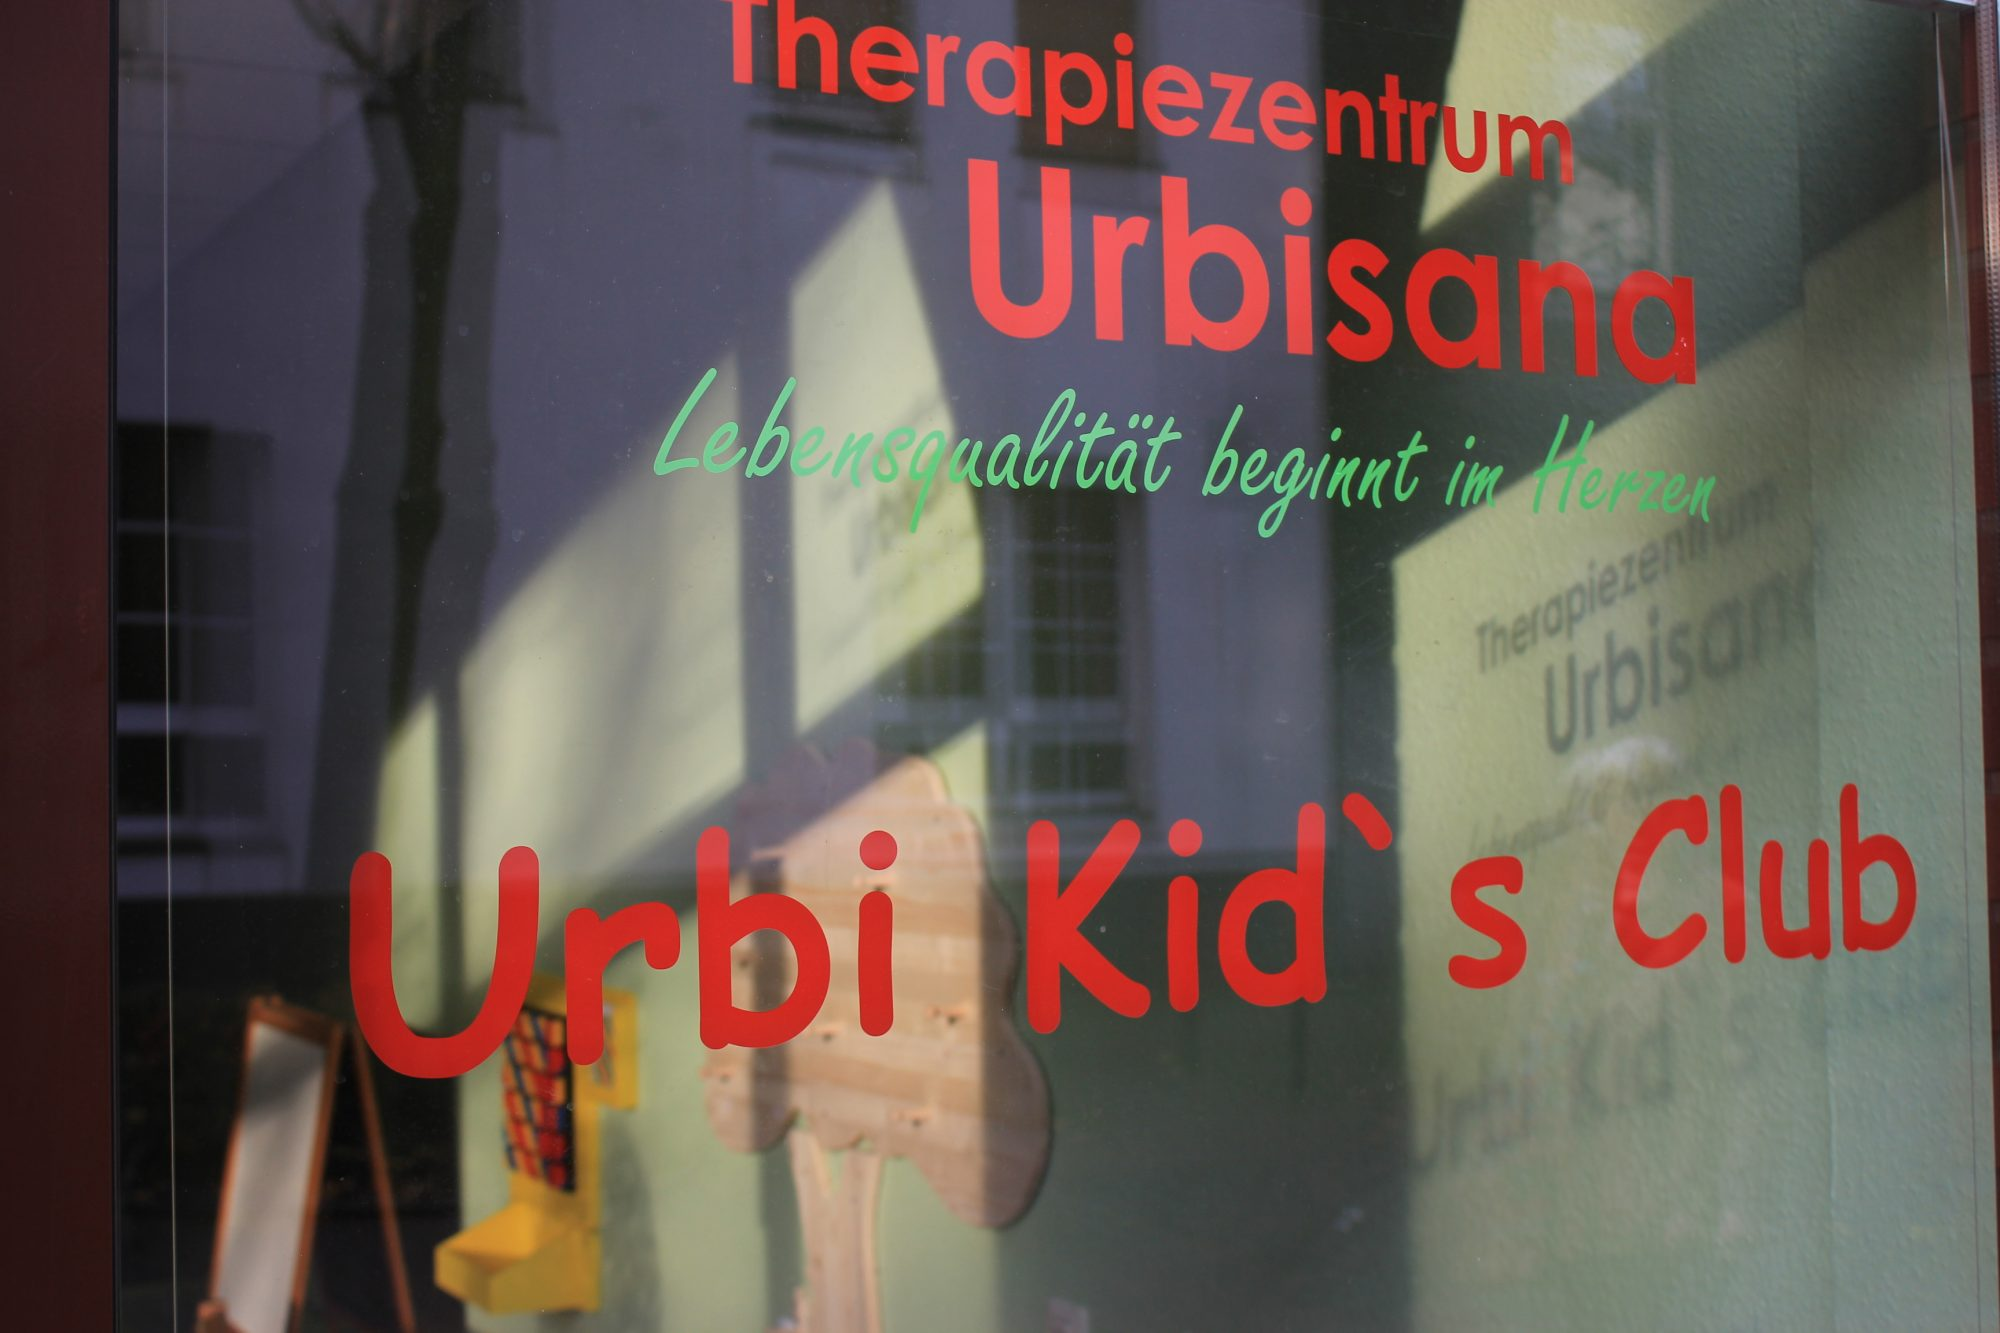 Therapiezentrum Urbisana